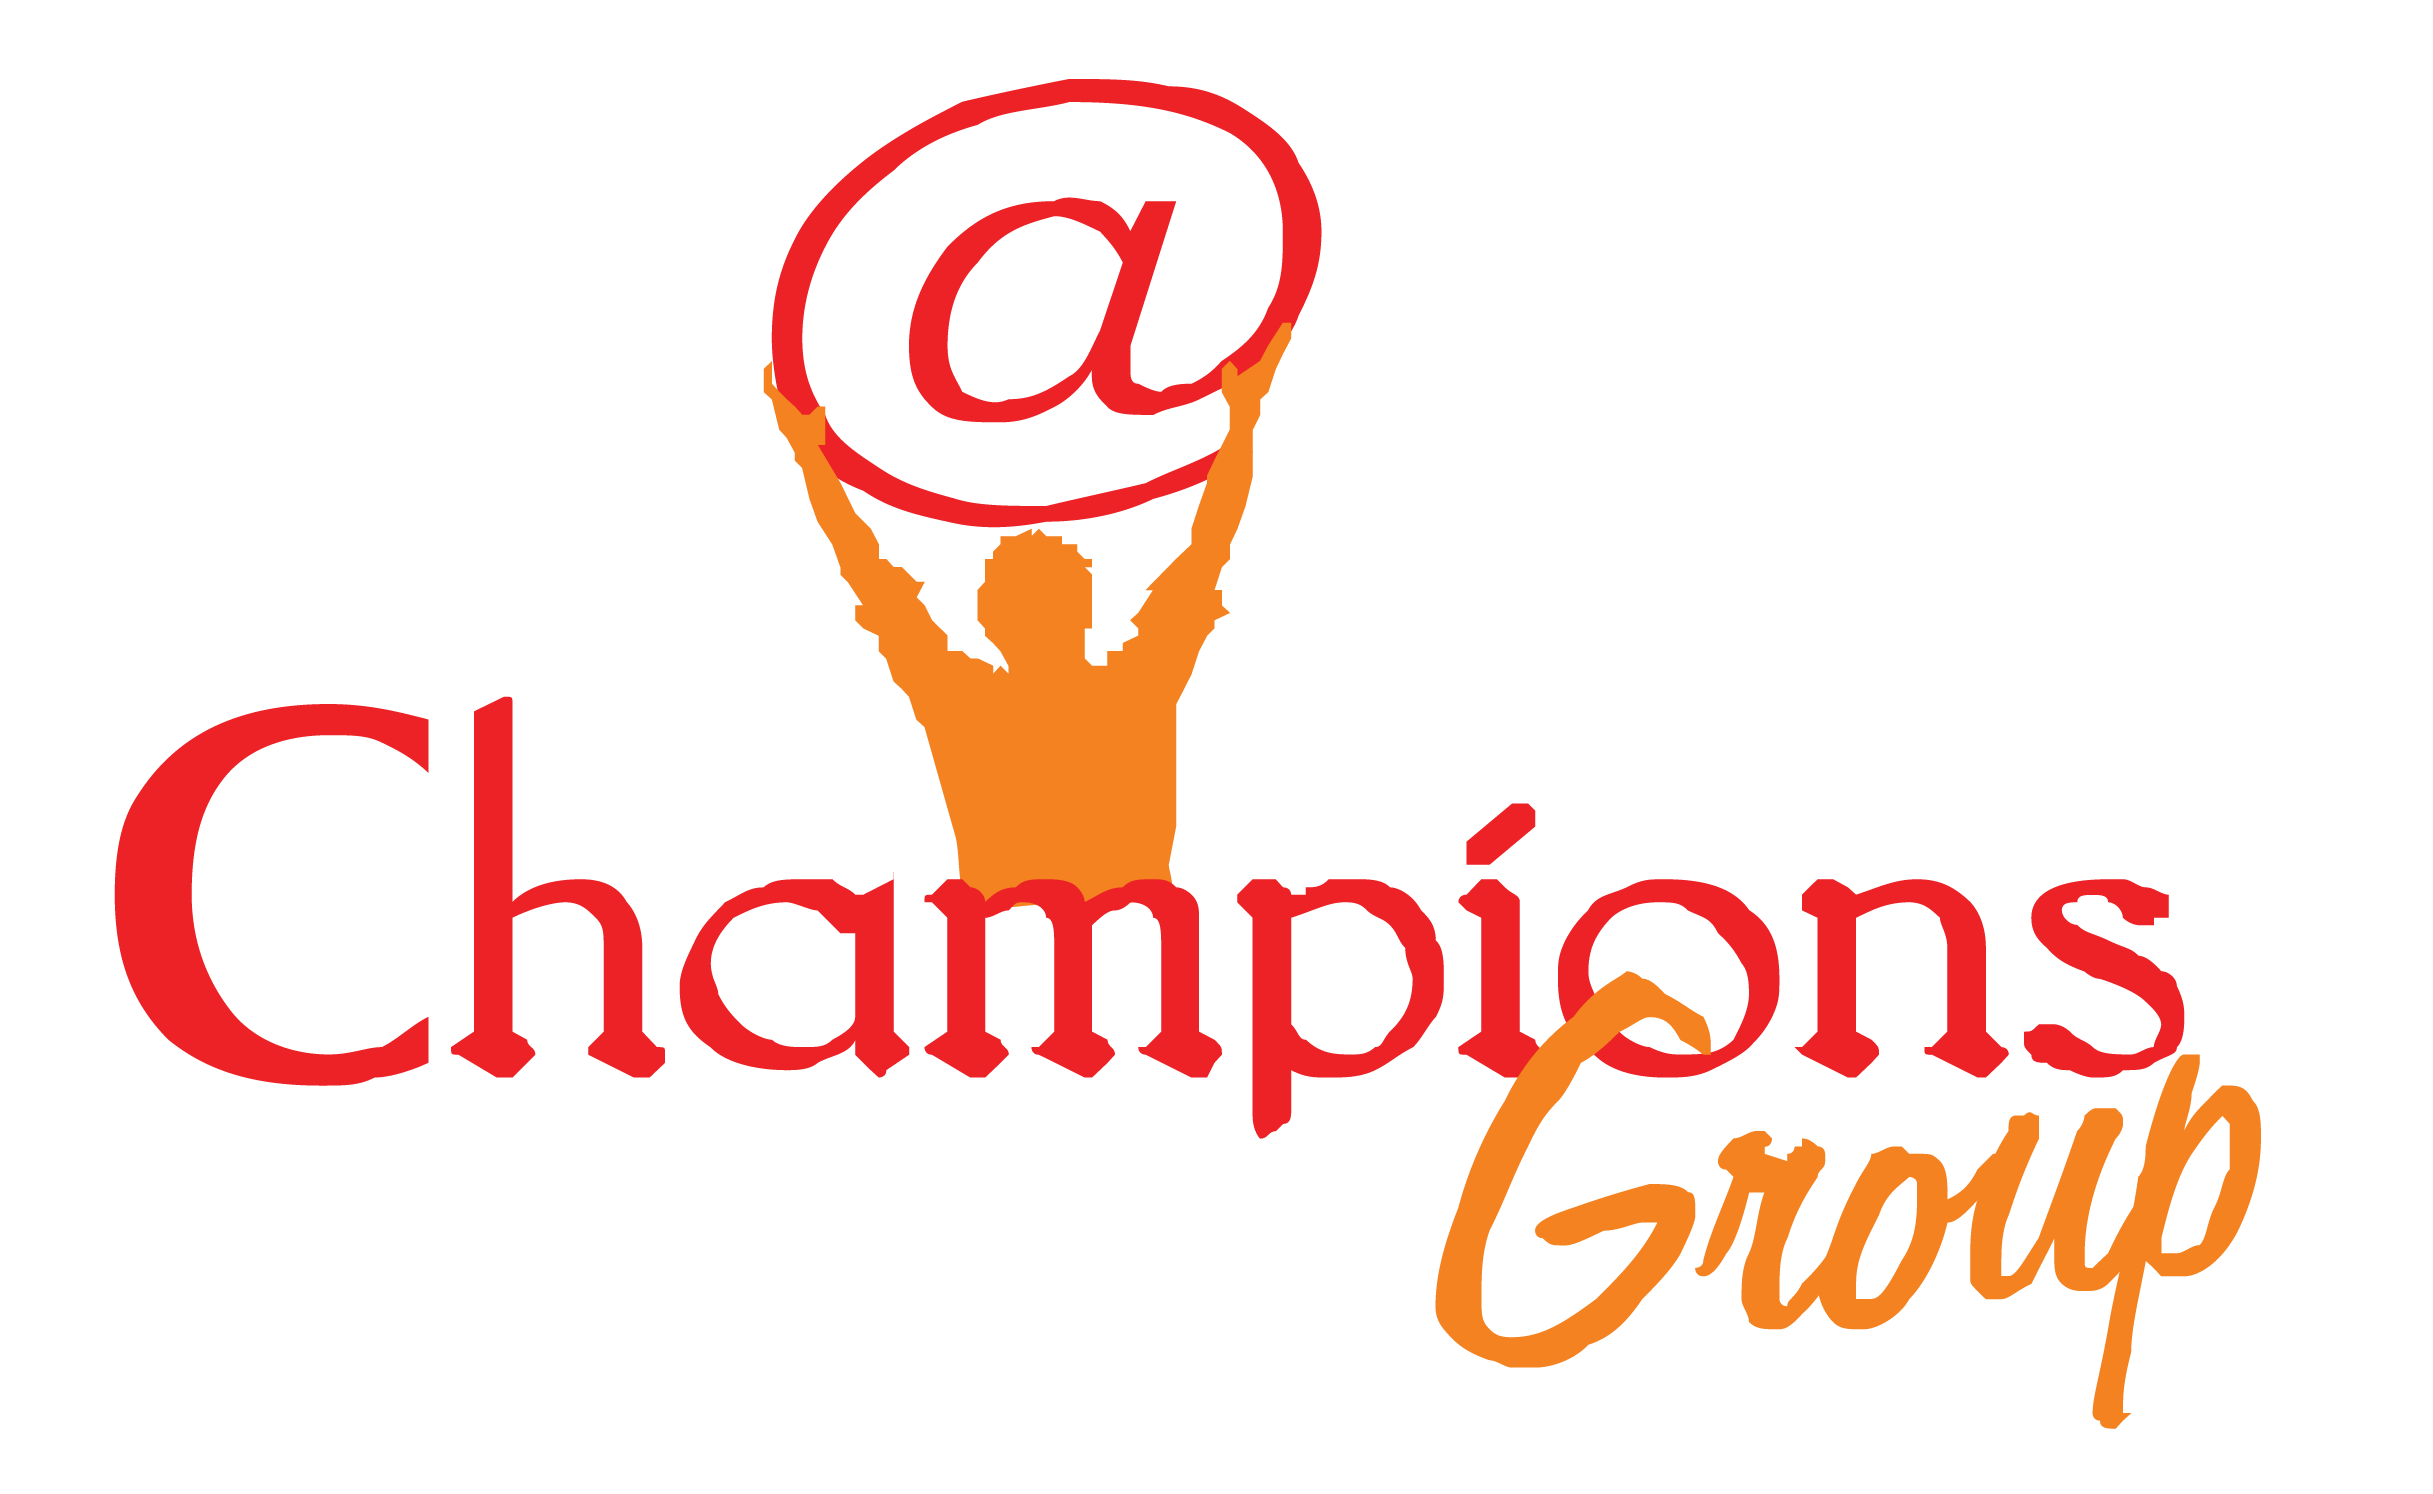 Champions group please click here to download the logo altavistaventures Image collections